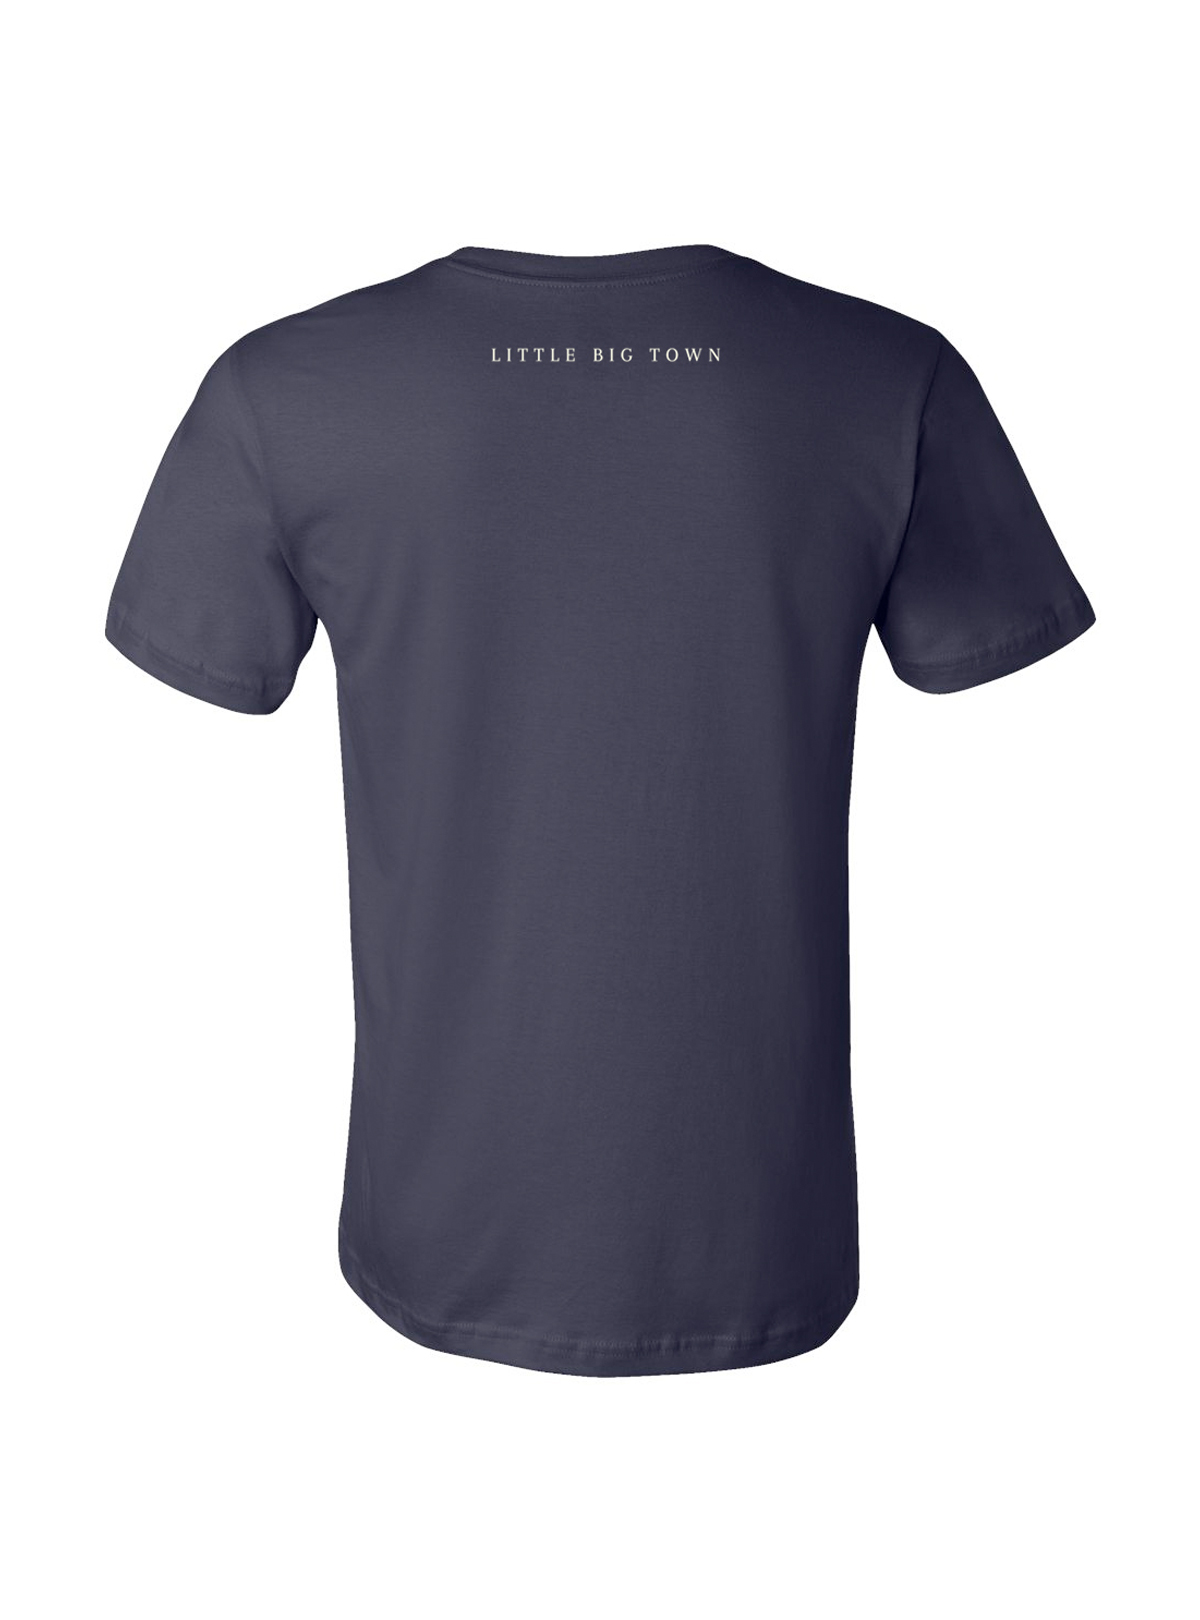 The Daughters Navy T-Shirt